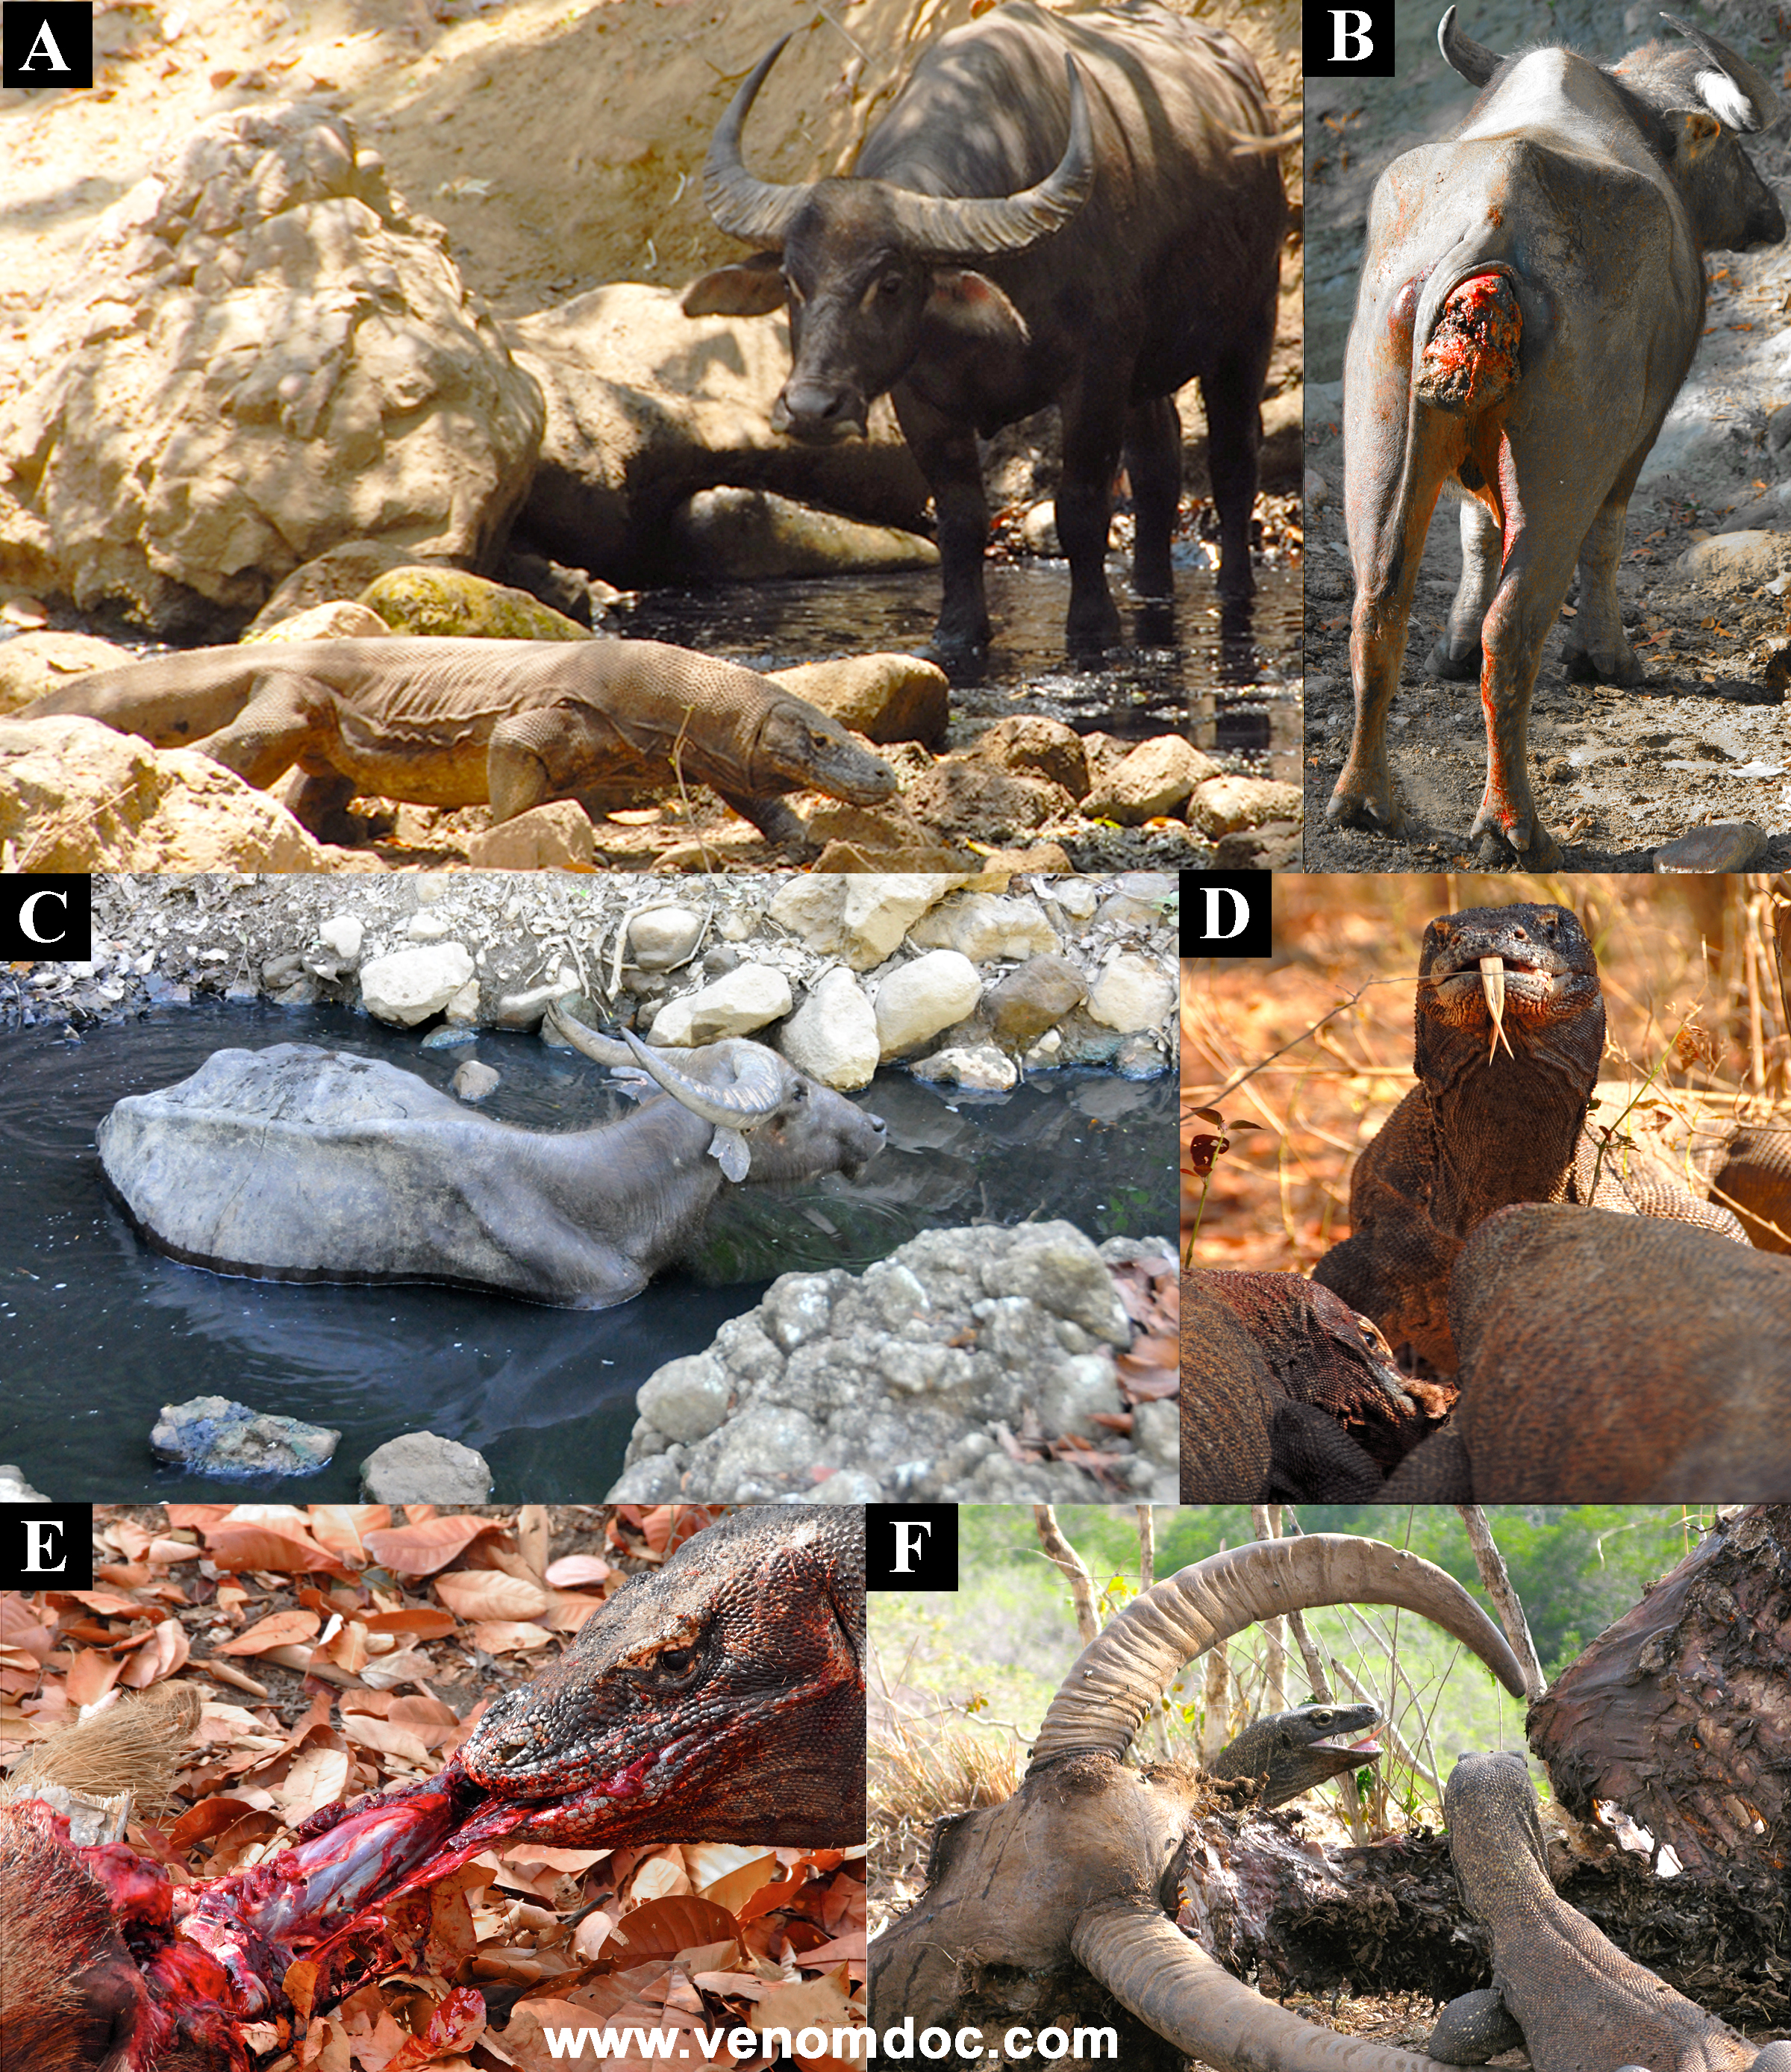 The (un)natural history of  Varanus komodoensis  and  Bubalus bubalis . These two animals share a habitat only because of the recent (< 300 years) introduction of B. bubalis onto the islands by Dutch settlers. Consequently, (A) B. bubalis does not recognize V. komodoensis as a natural predator, while V. komodoensis will experimentally attack any animal. (B) B. bubalis always escape but sometimes with deep wounds to the hindquarters. (C) Upon seeking refuge in the tiny rocky watering holes that are the only water source on the small islands, the wounds become infected because of the high concentrations of fecal matter. (D, E) If death occurs, multiple V. komodoensis will feed on the fresh carcass, using their powerful necks and forelegs to remove large chunks of meat. (F) Only once the adults have finished will the smaller V. komodoensis feed on the remains. (Photos A, D, E: Chris Kugelman; B, C: Bryan G. Fry; F: Gembong Riyadi Nurrasa.). From our book Venomous Reptiles and their toxins.